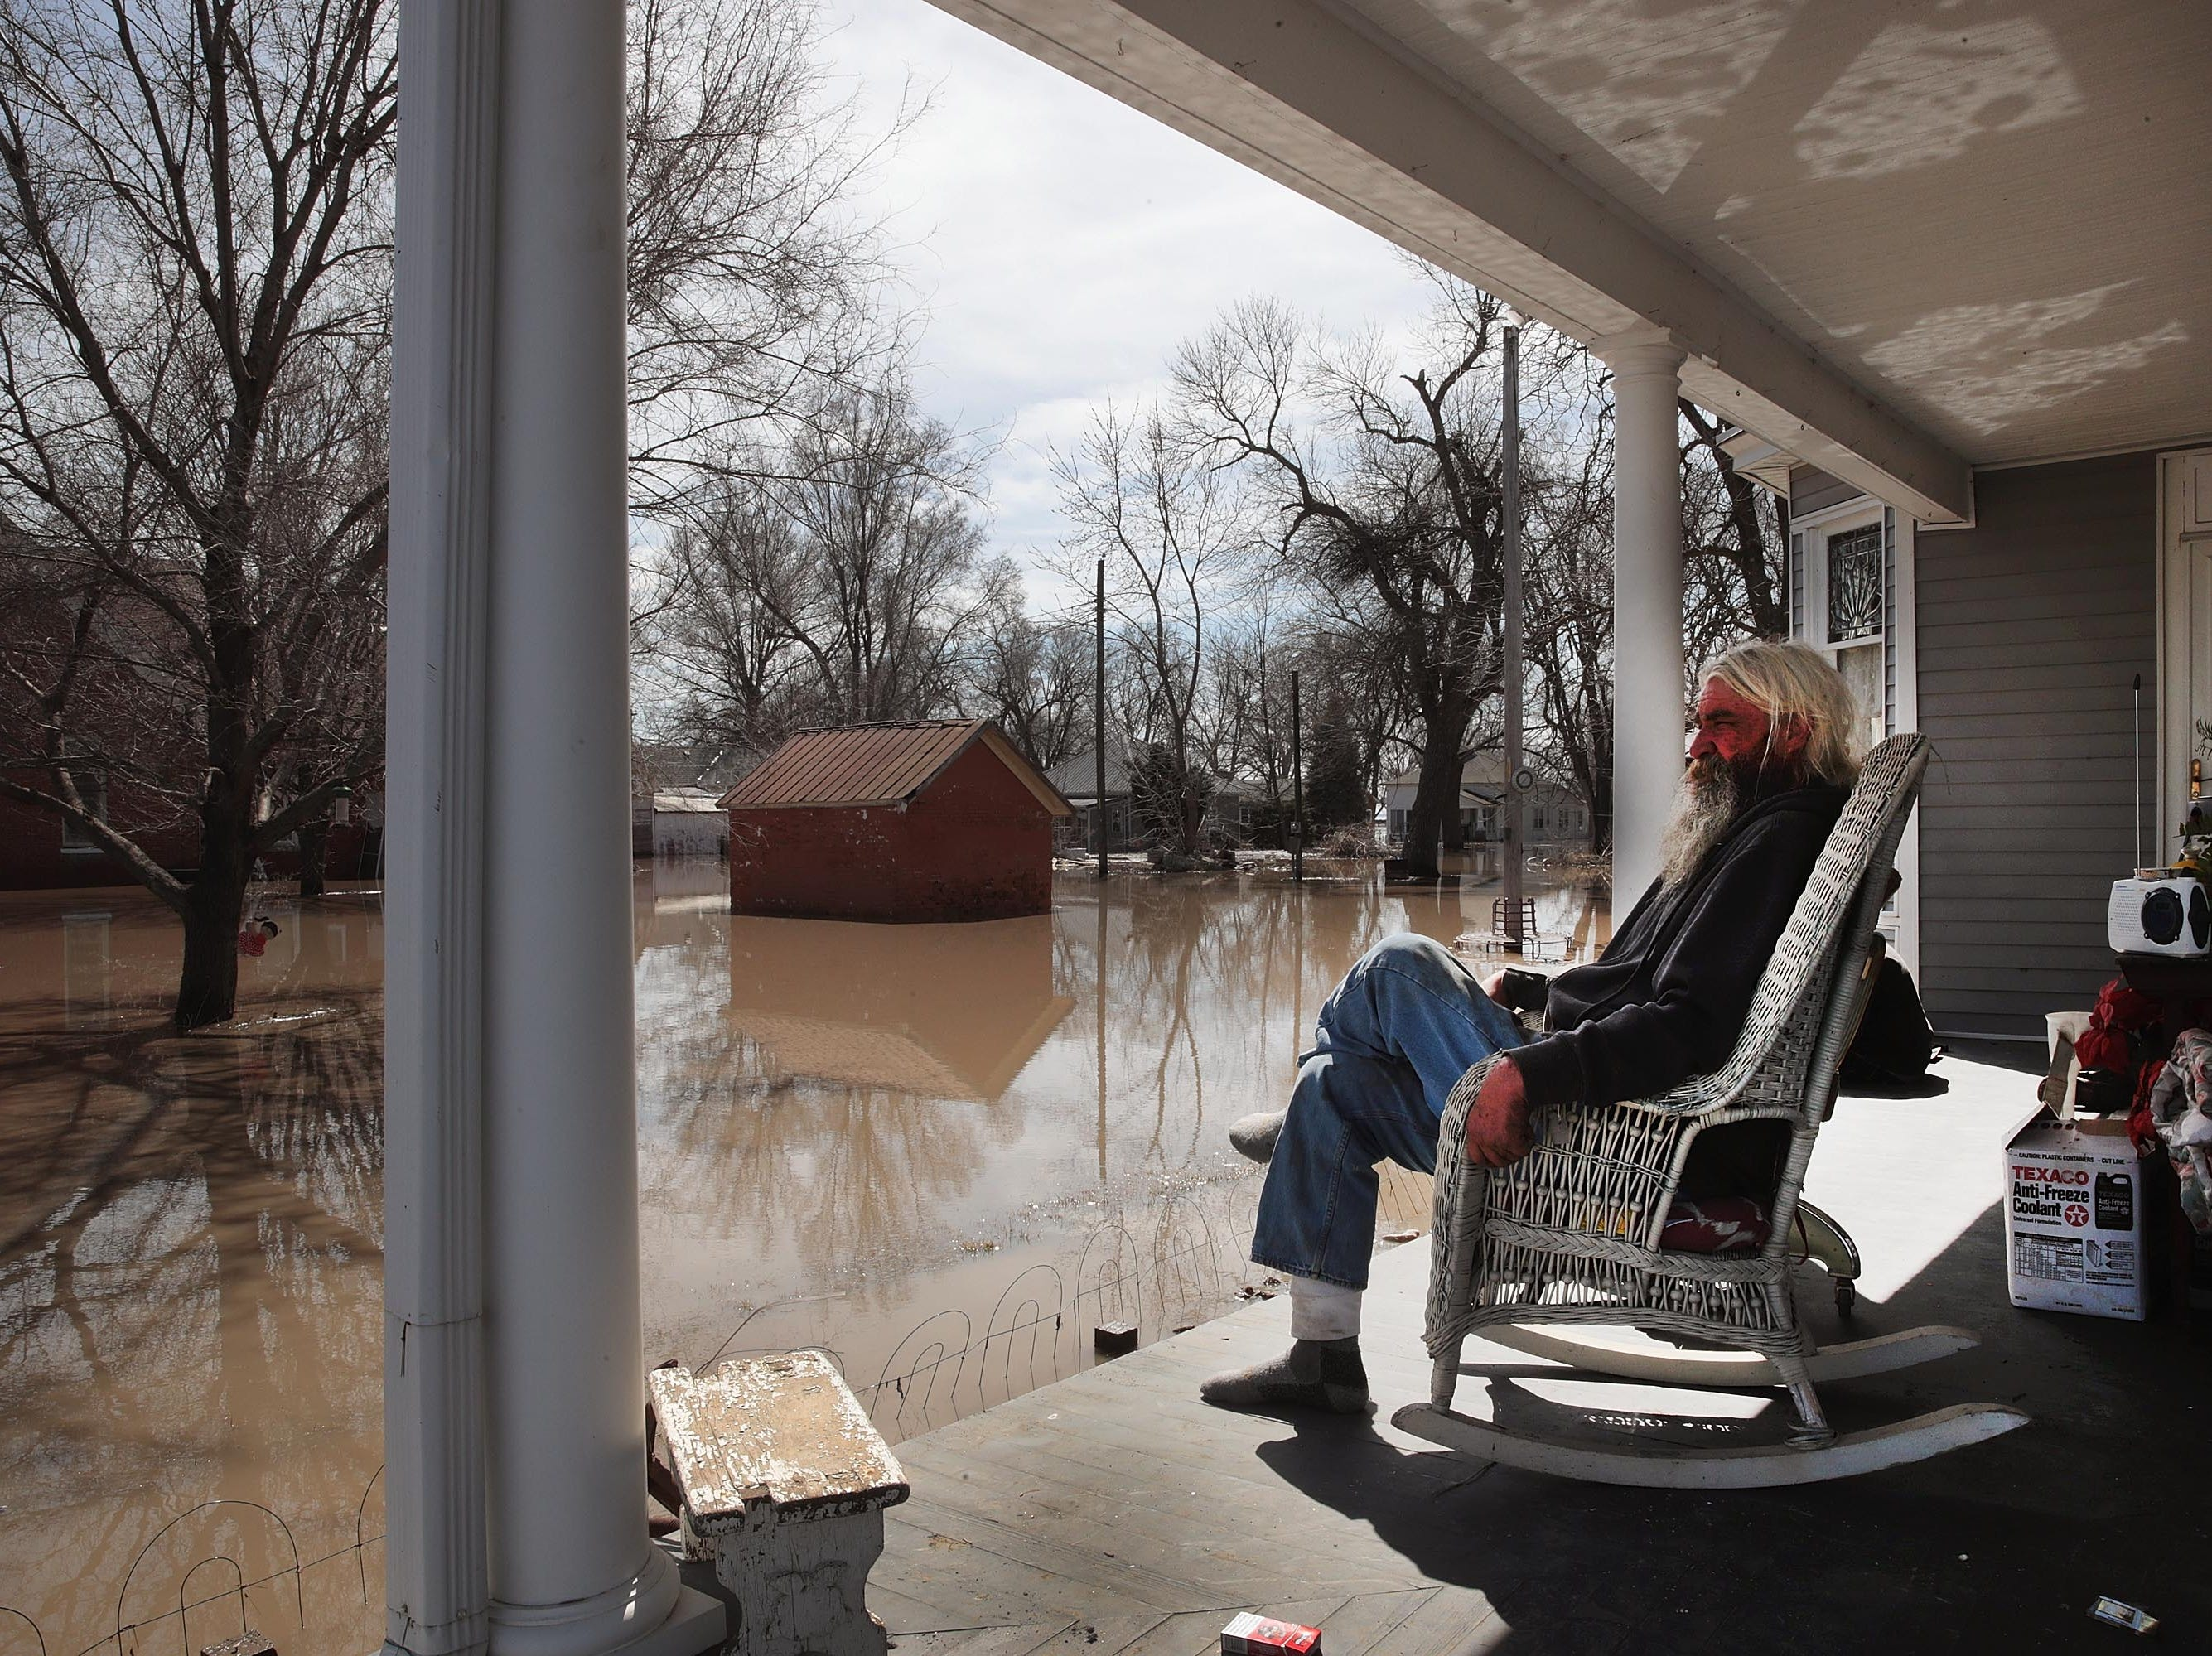 Mike Rasnic sits on the front porch of his home which is surrounded by floodwater on March 22, 2019 in Craig, Mo.